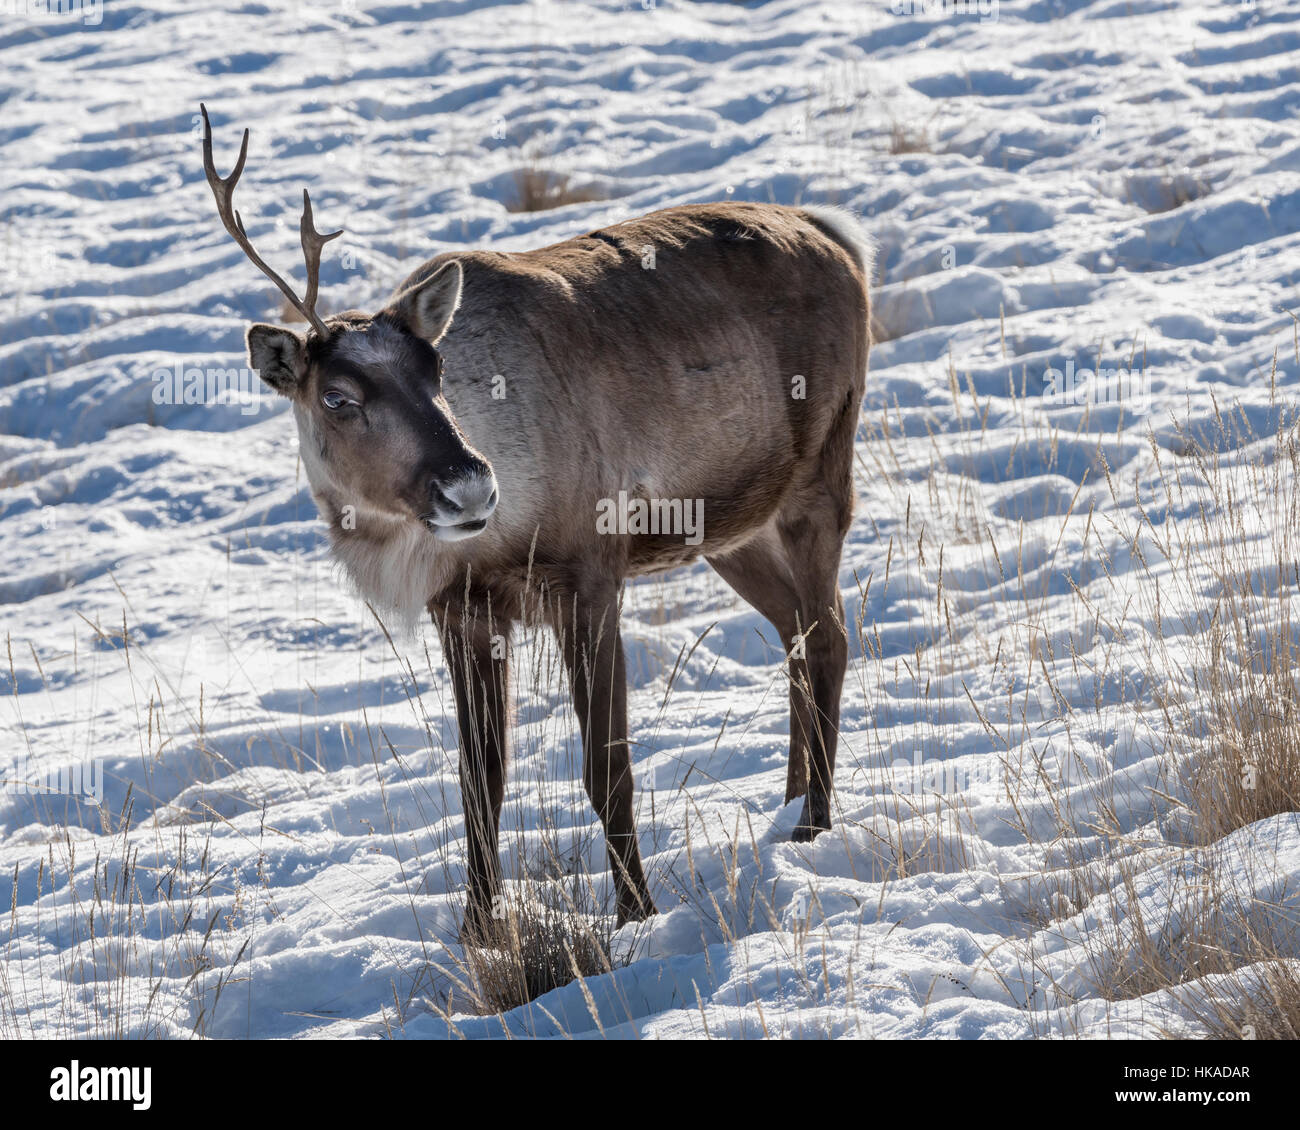 One horned caribou with snow and dried grasses, Whitehorse, Yukon Territory - Stock Image